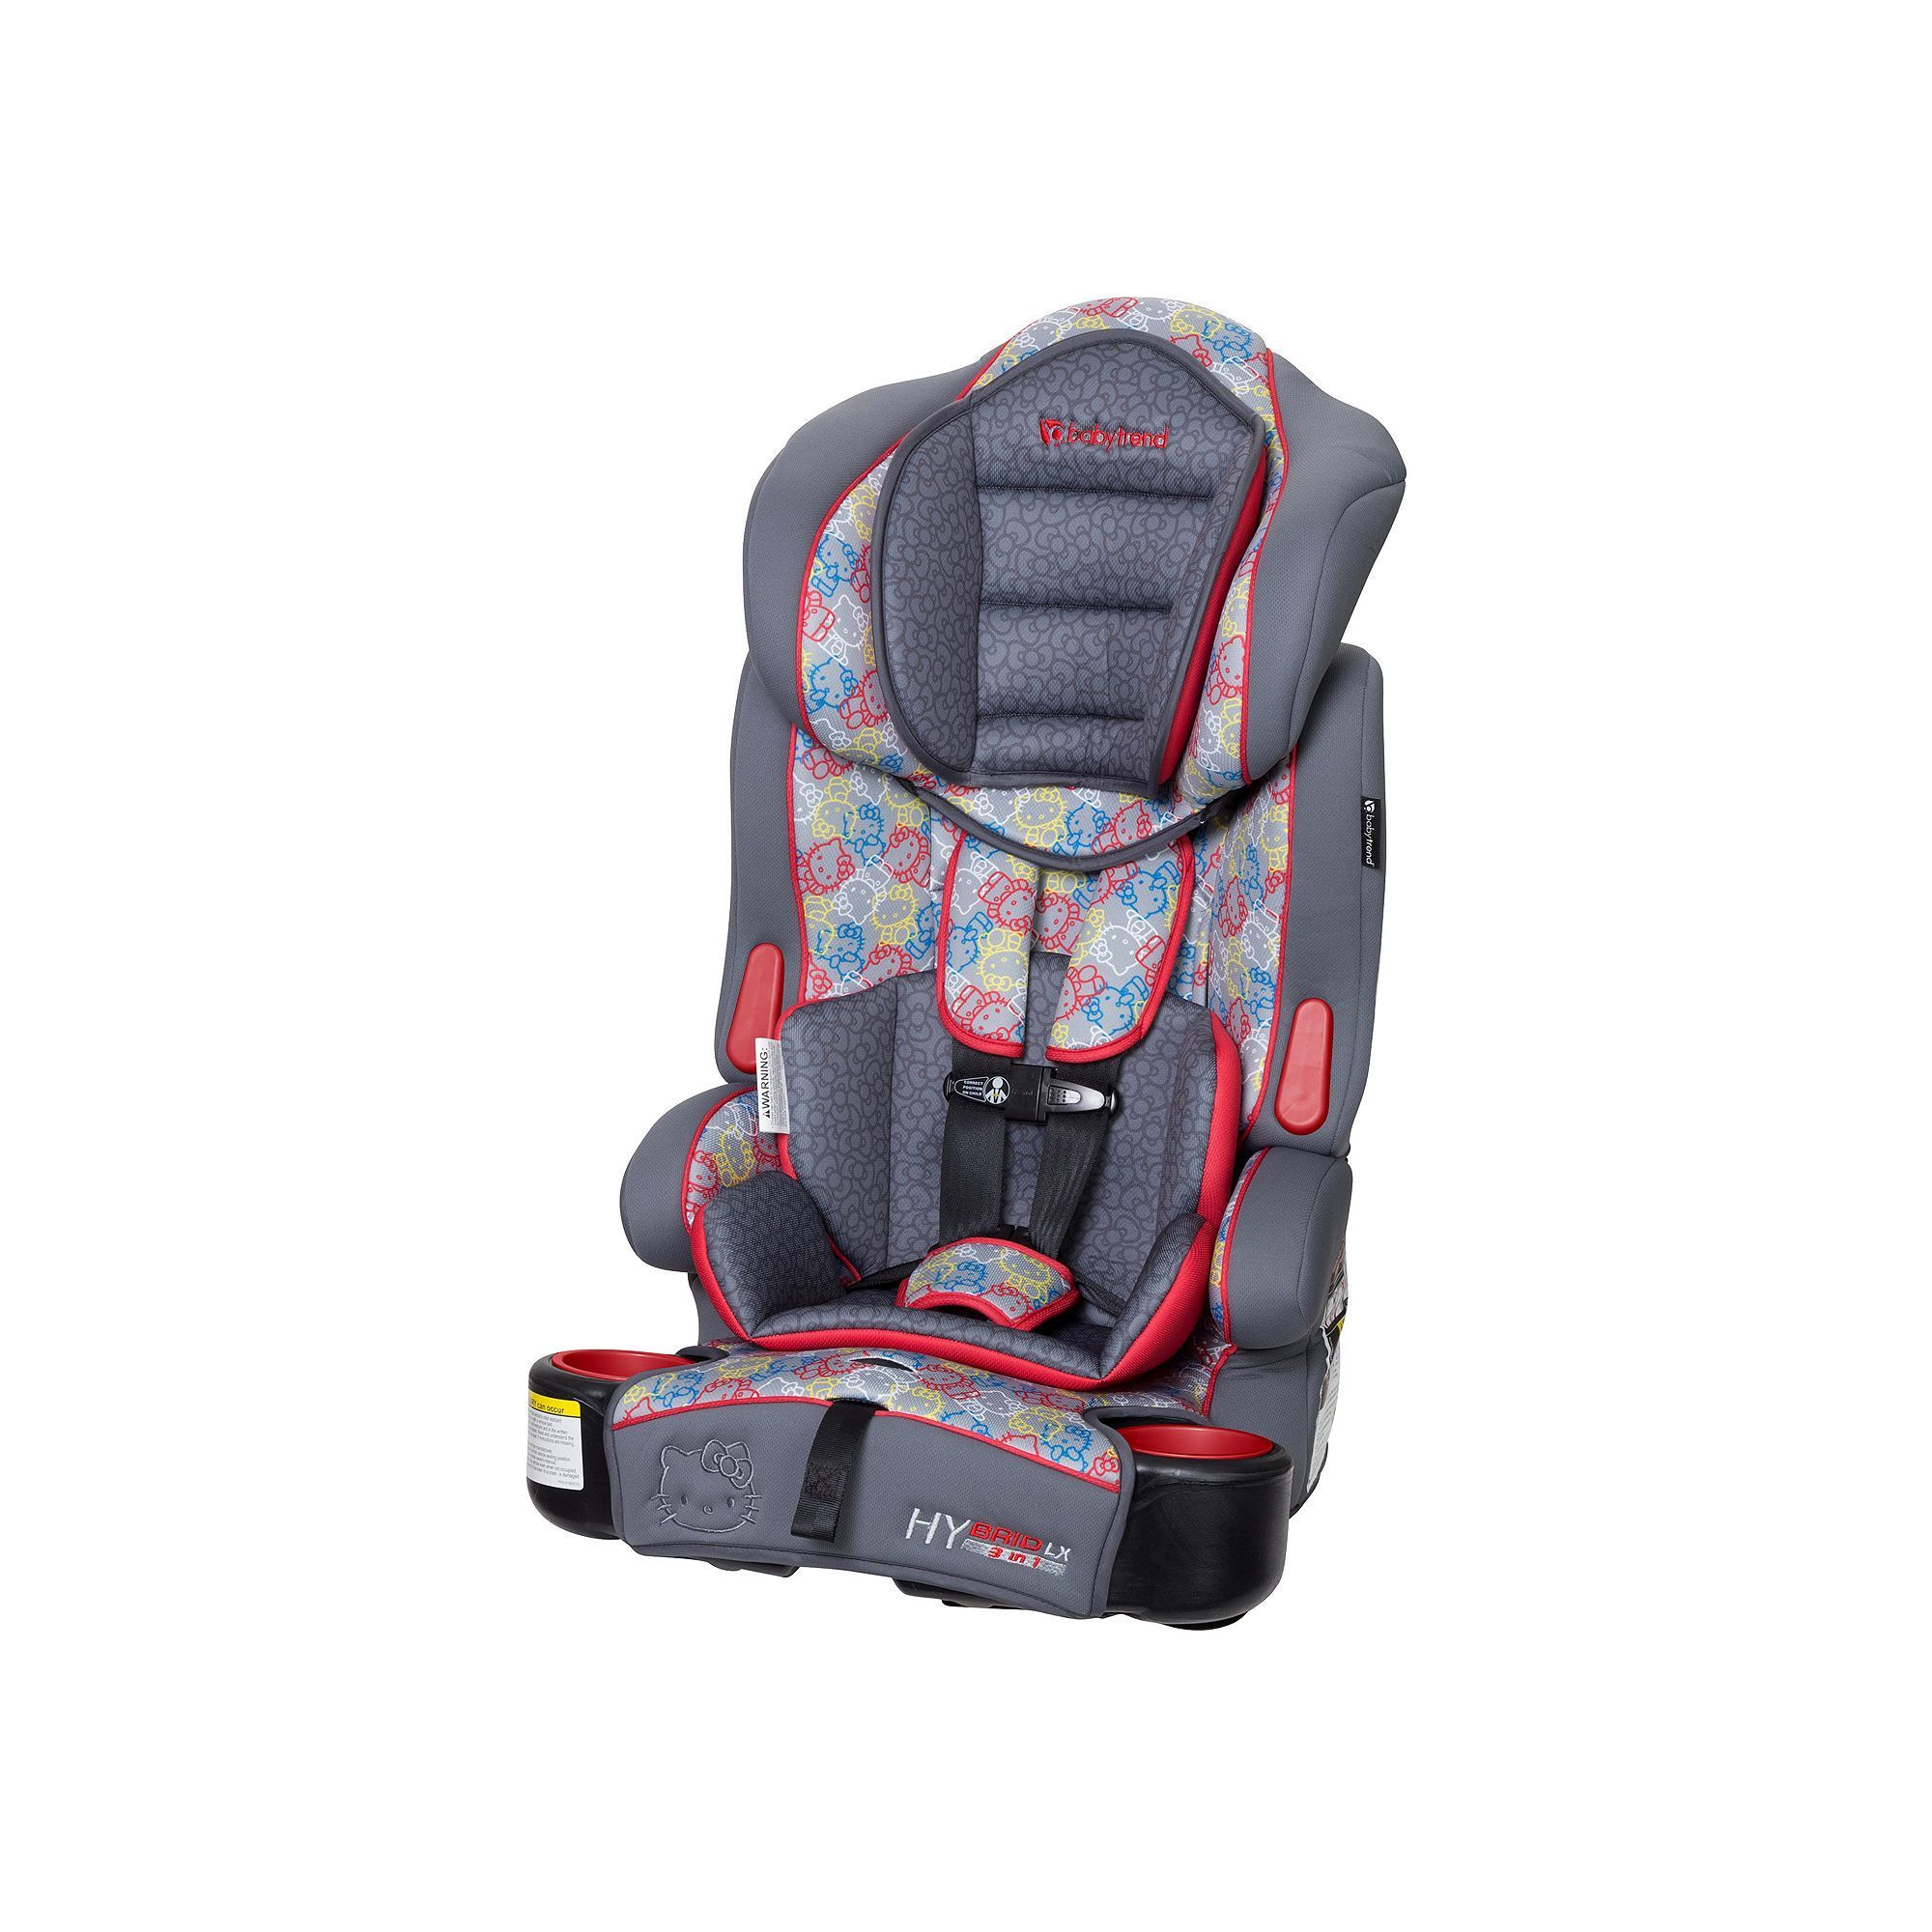 Baby Trend Hybrid LX Hello Kitty® 3in1 Booster Car Seat